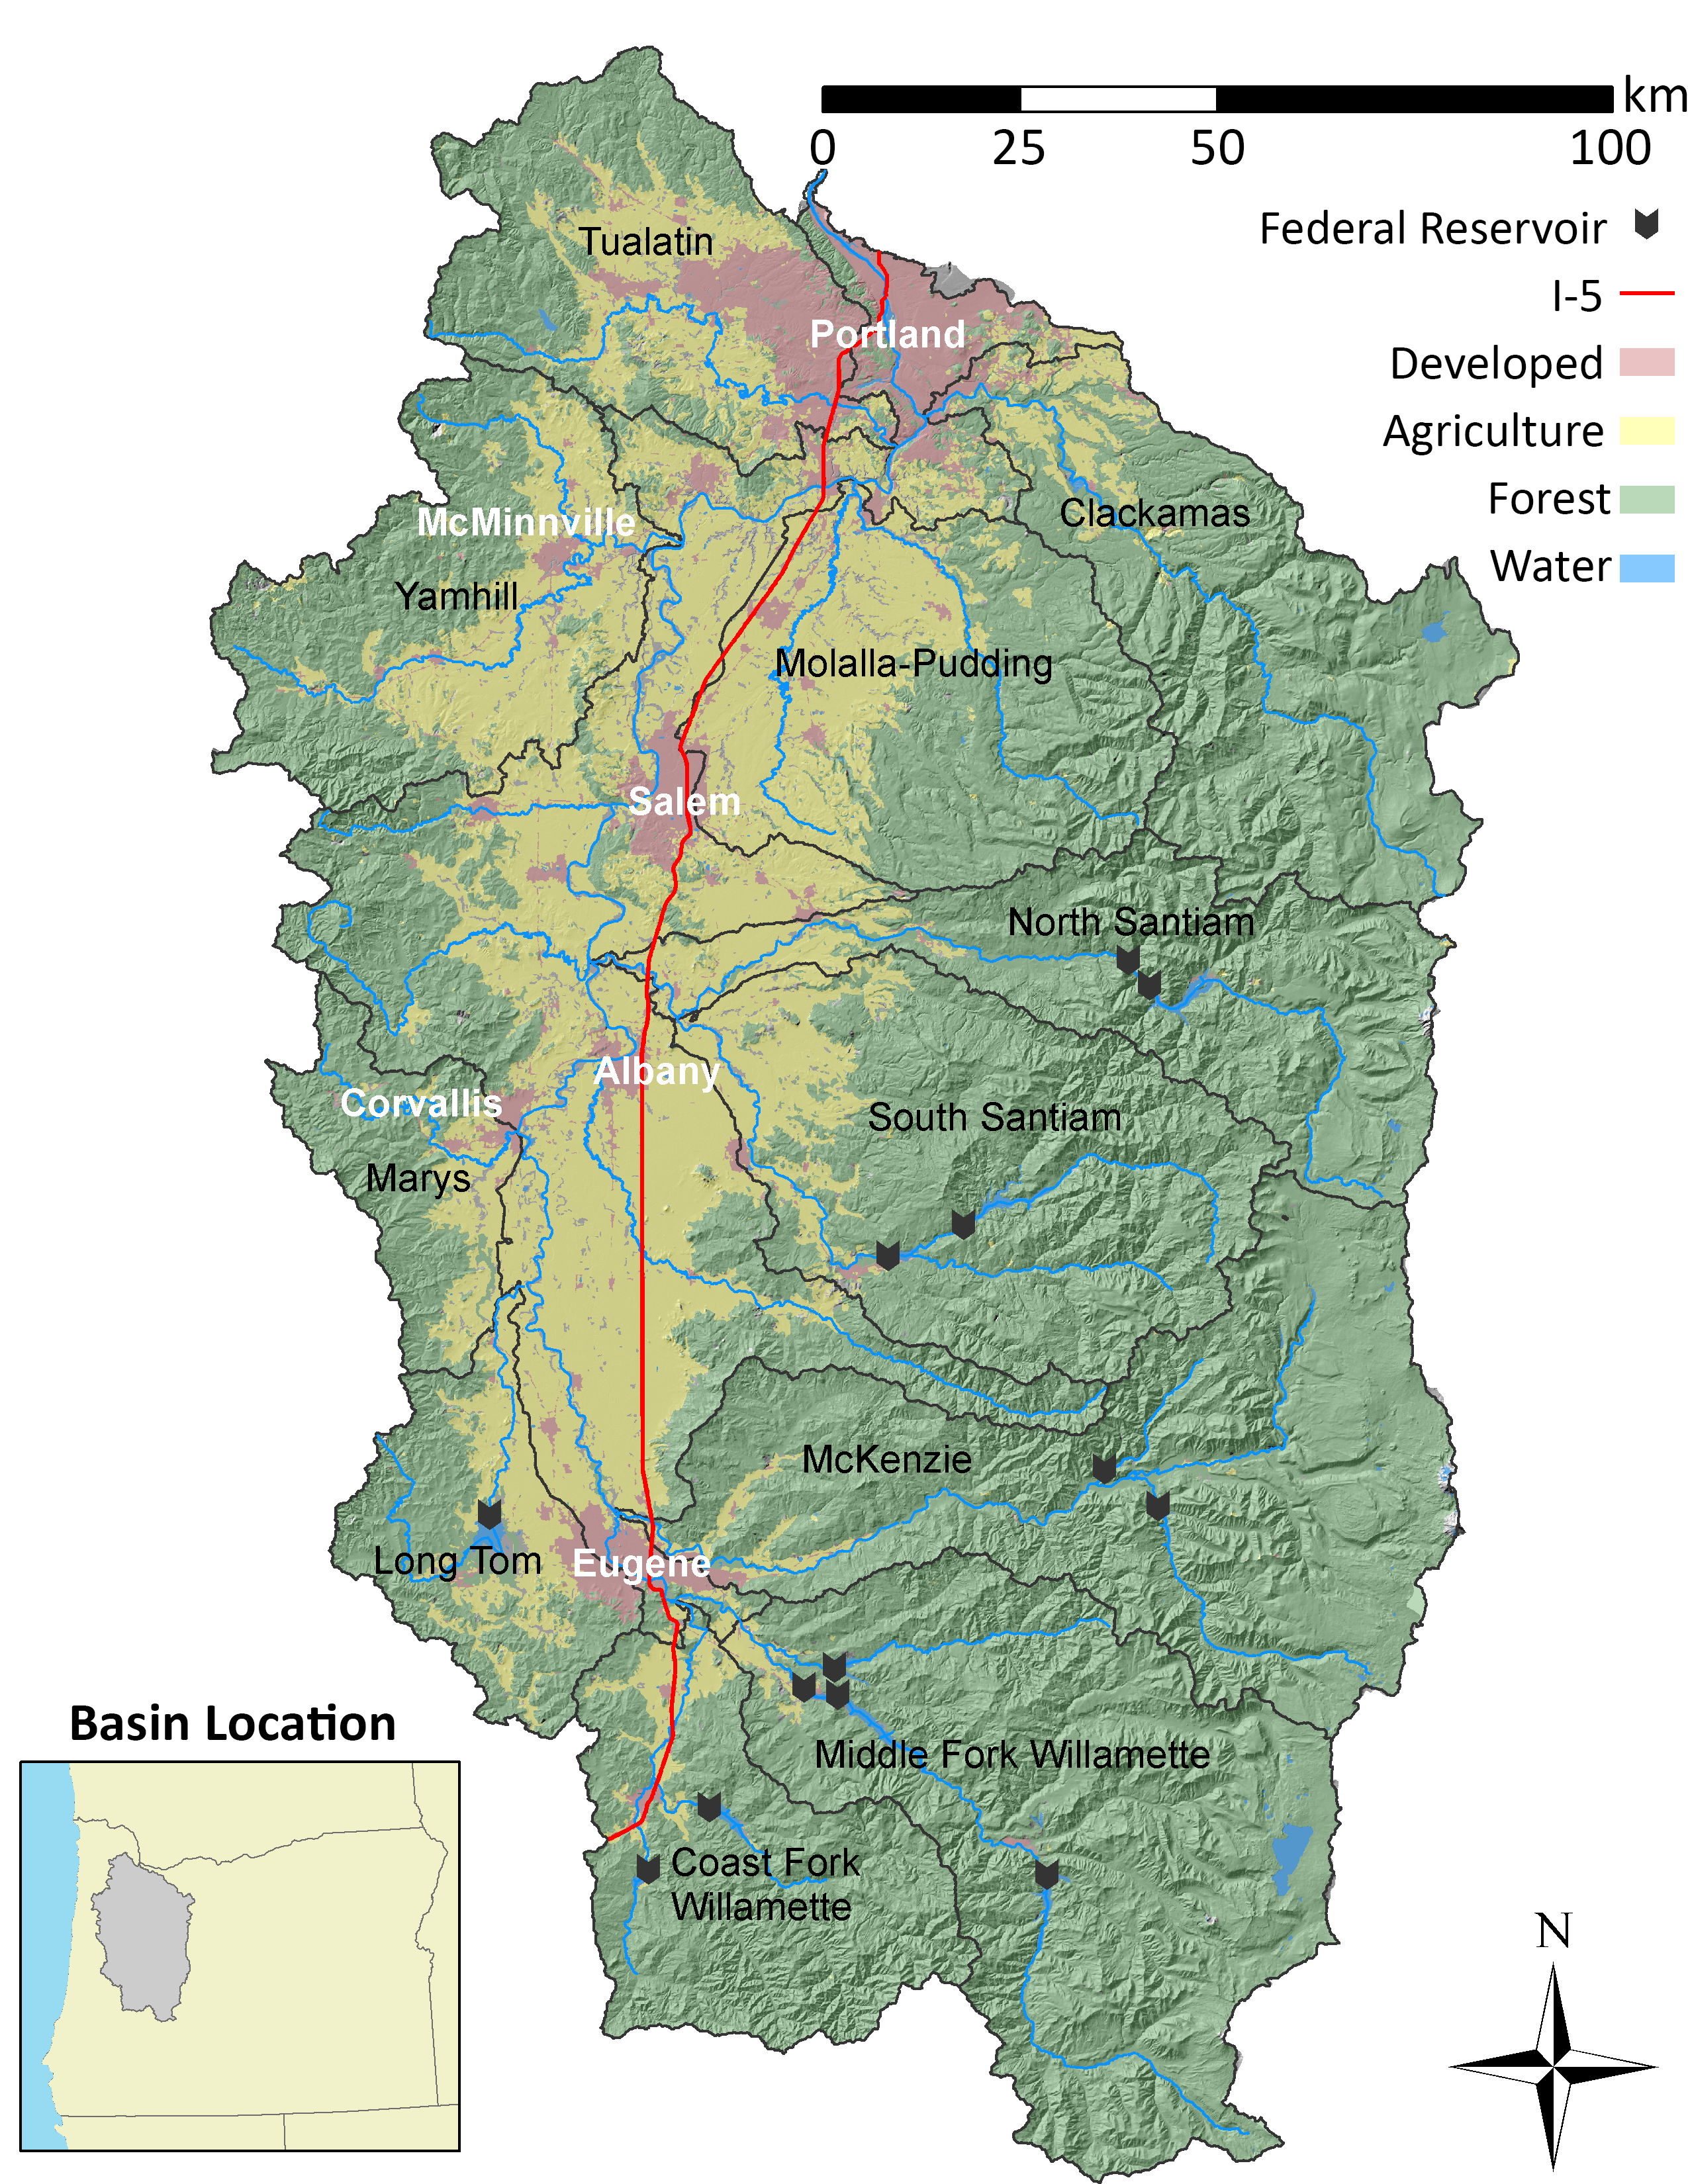 Map of the Willamette River Basin